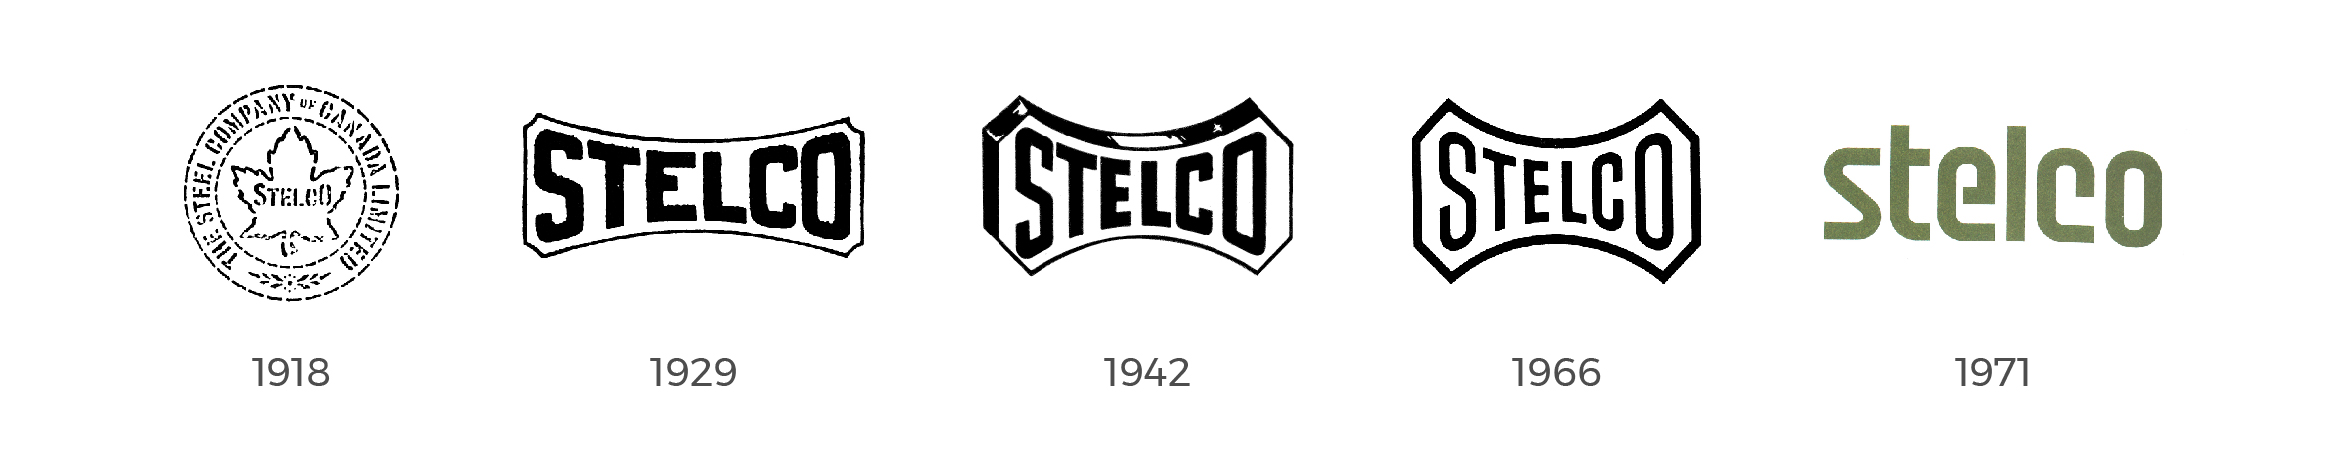 Steclco_History-02